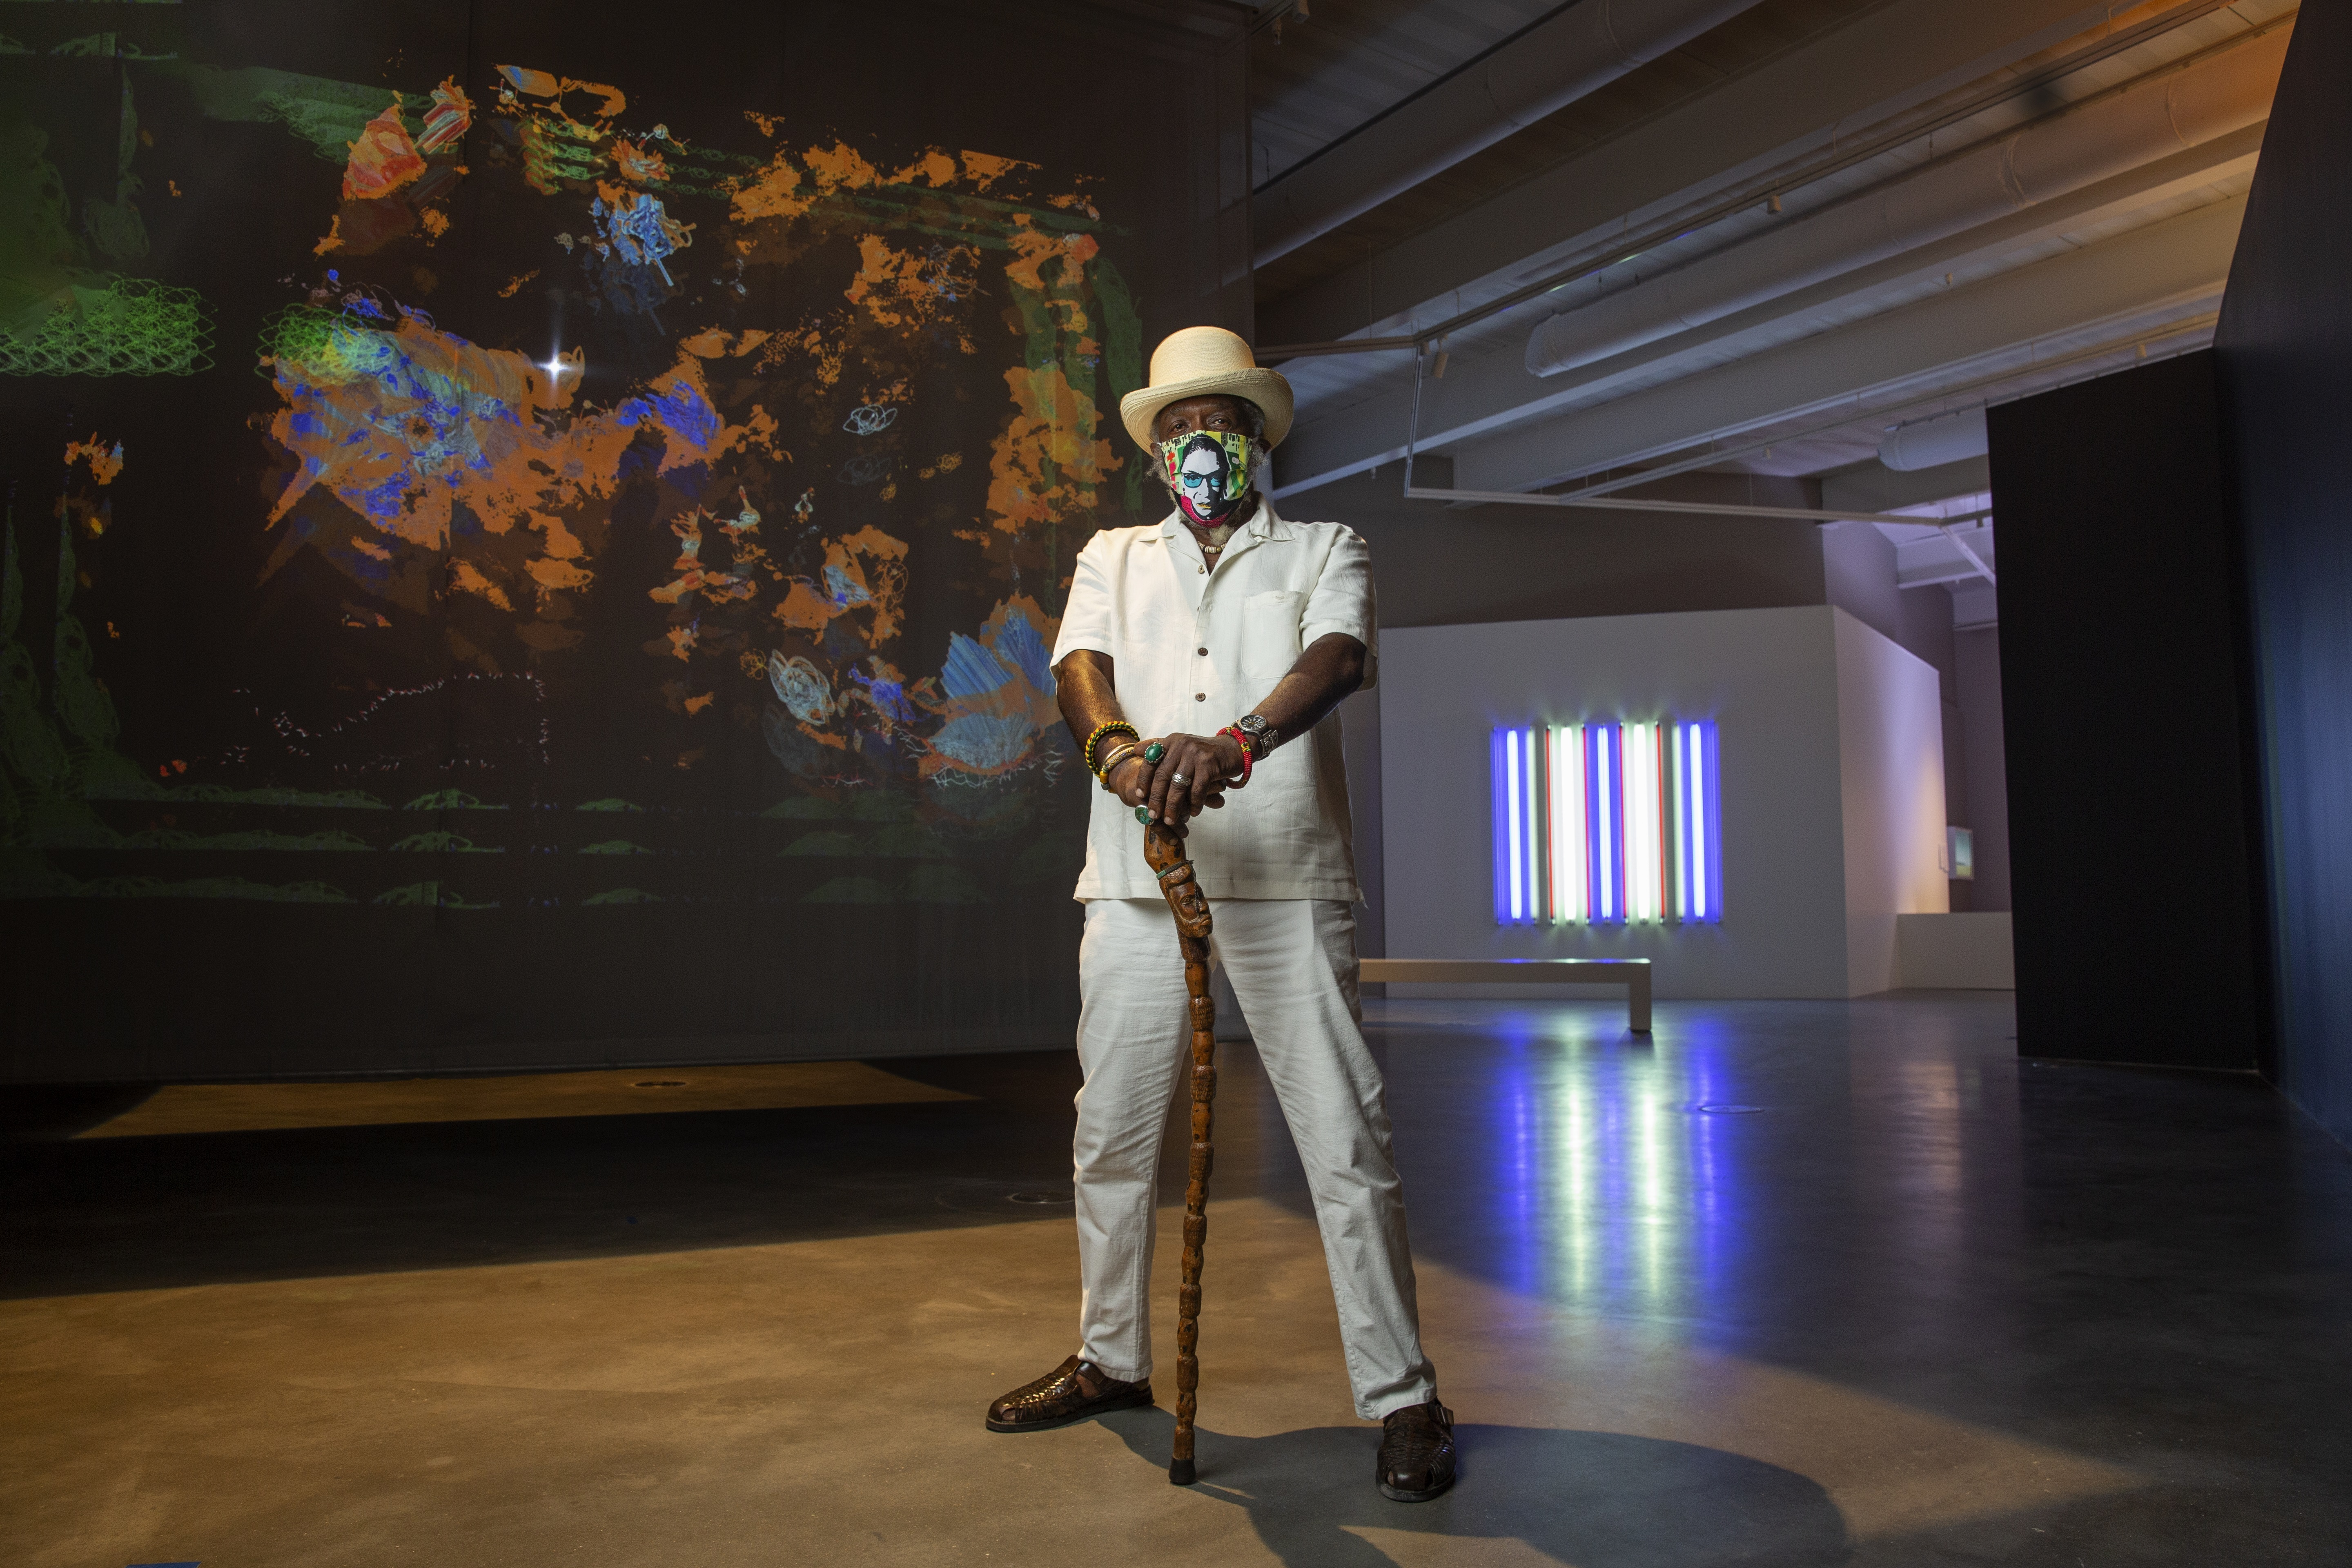 A masked person with a cane stands in a contemporary art gallery in front of an interactive abstract piece of video art